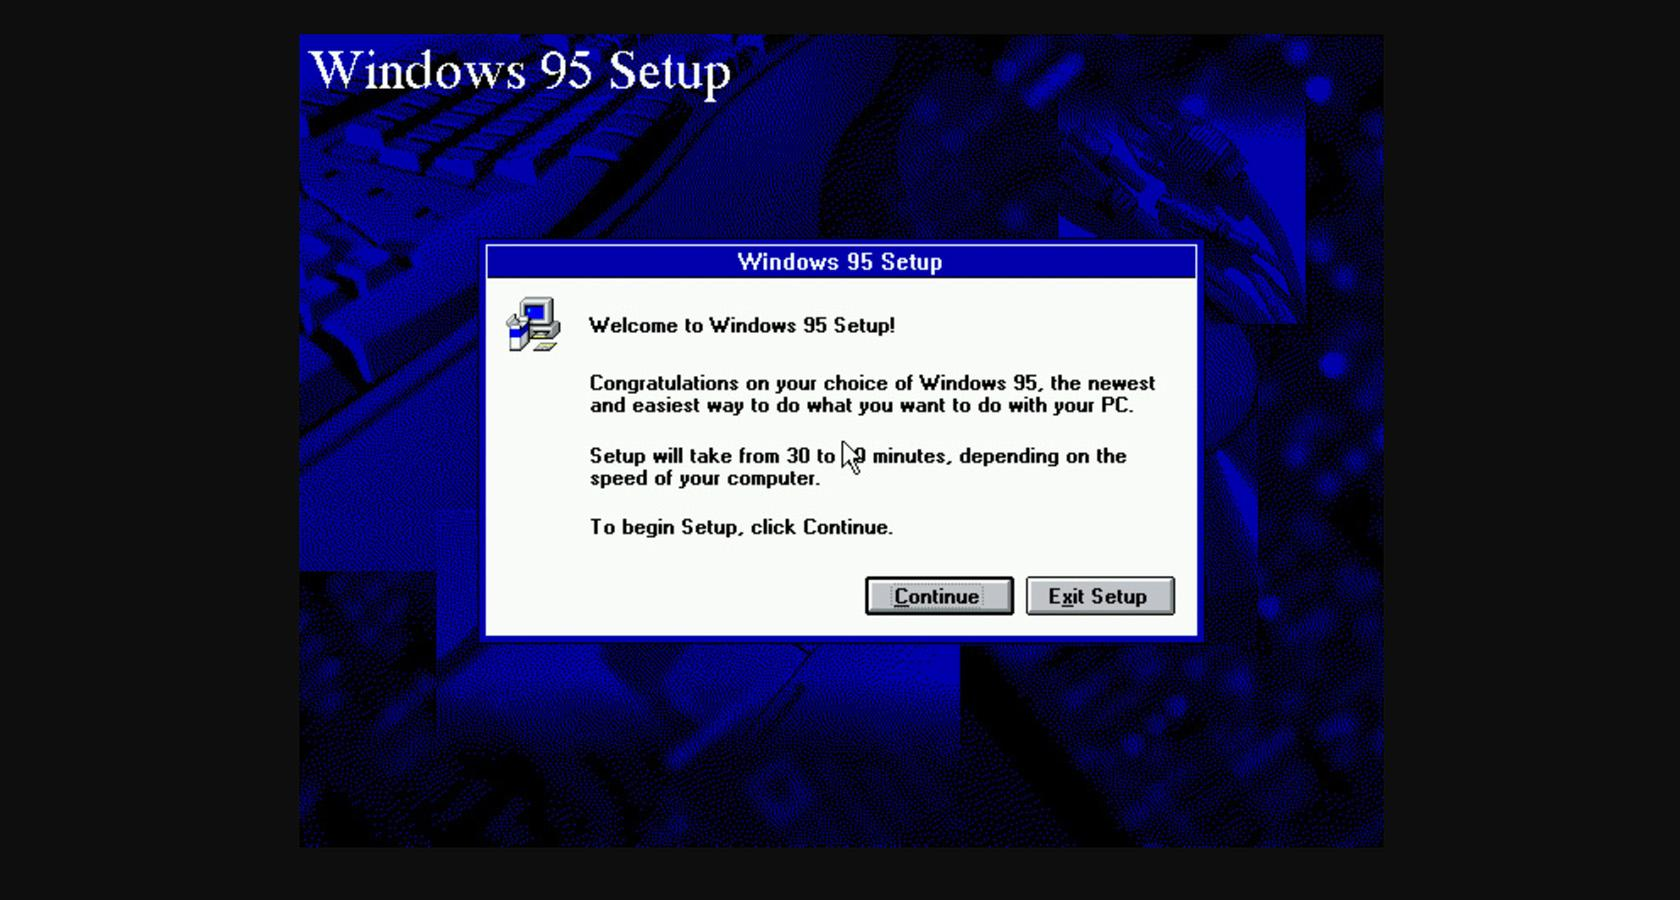 Creative copy in the Windows 95 setup wizard.